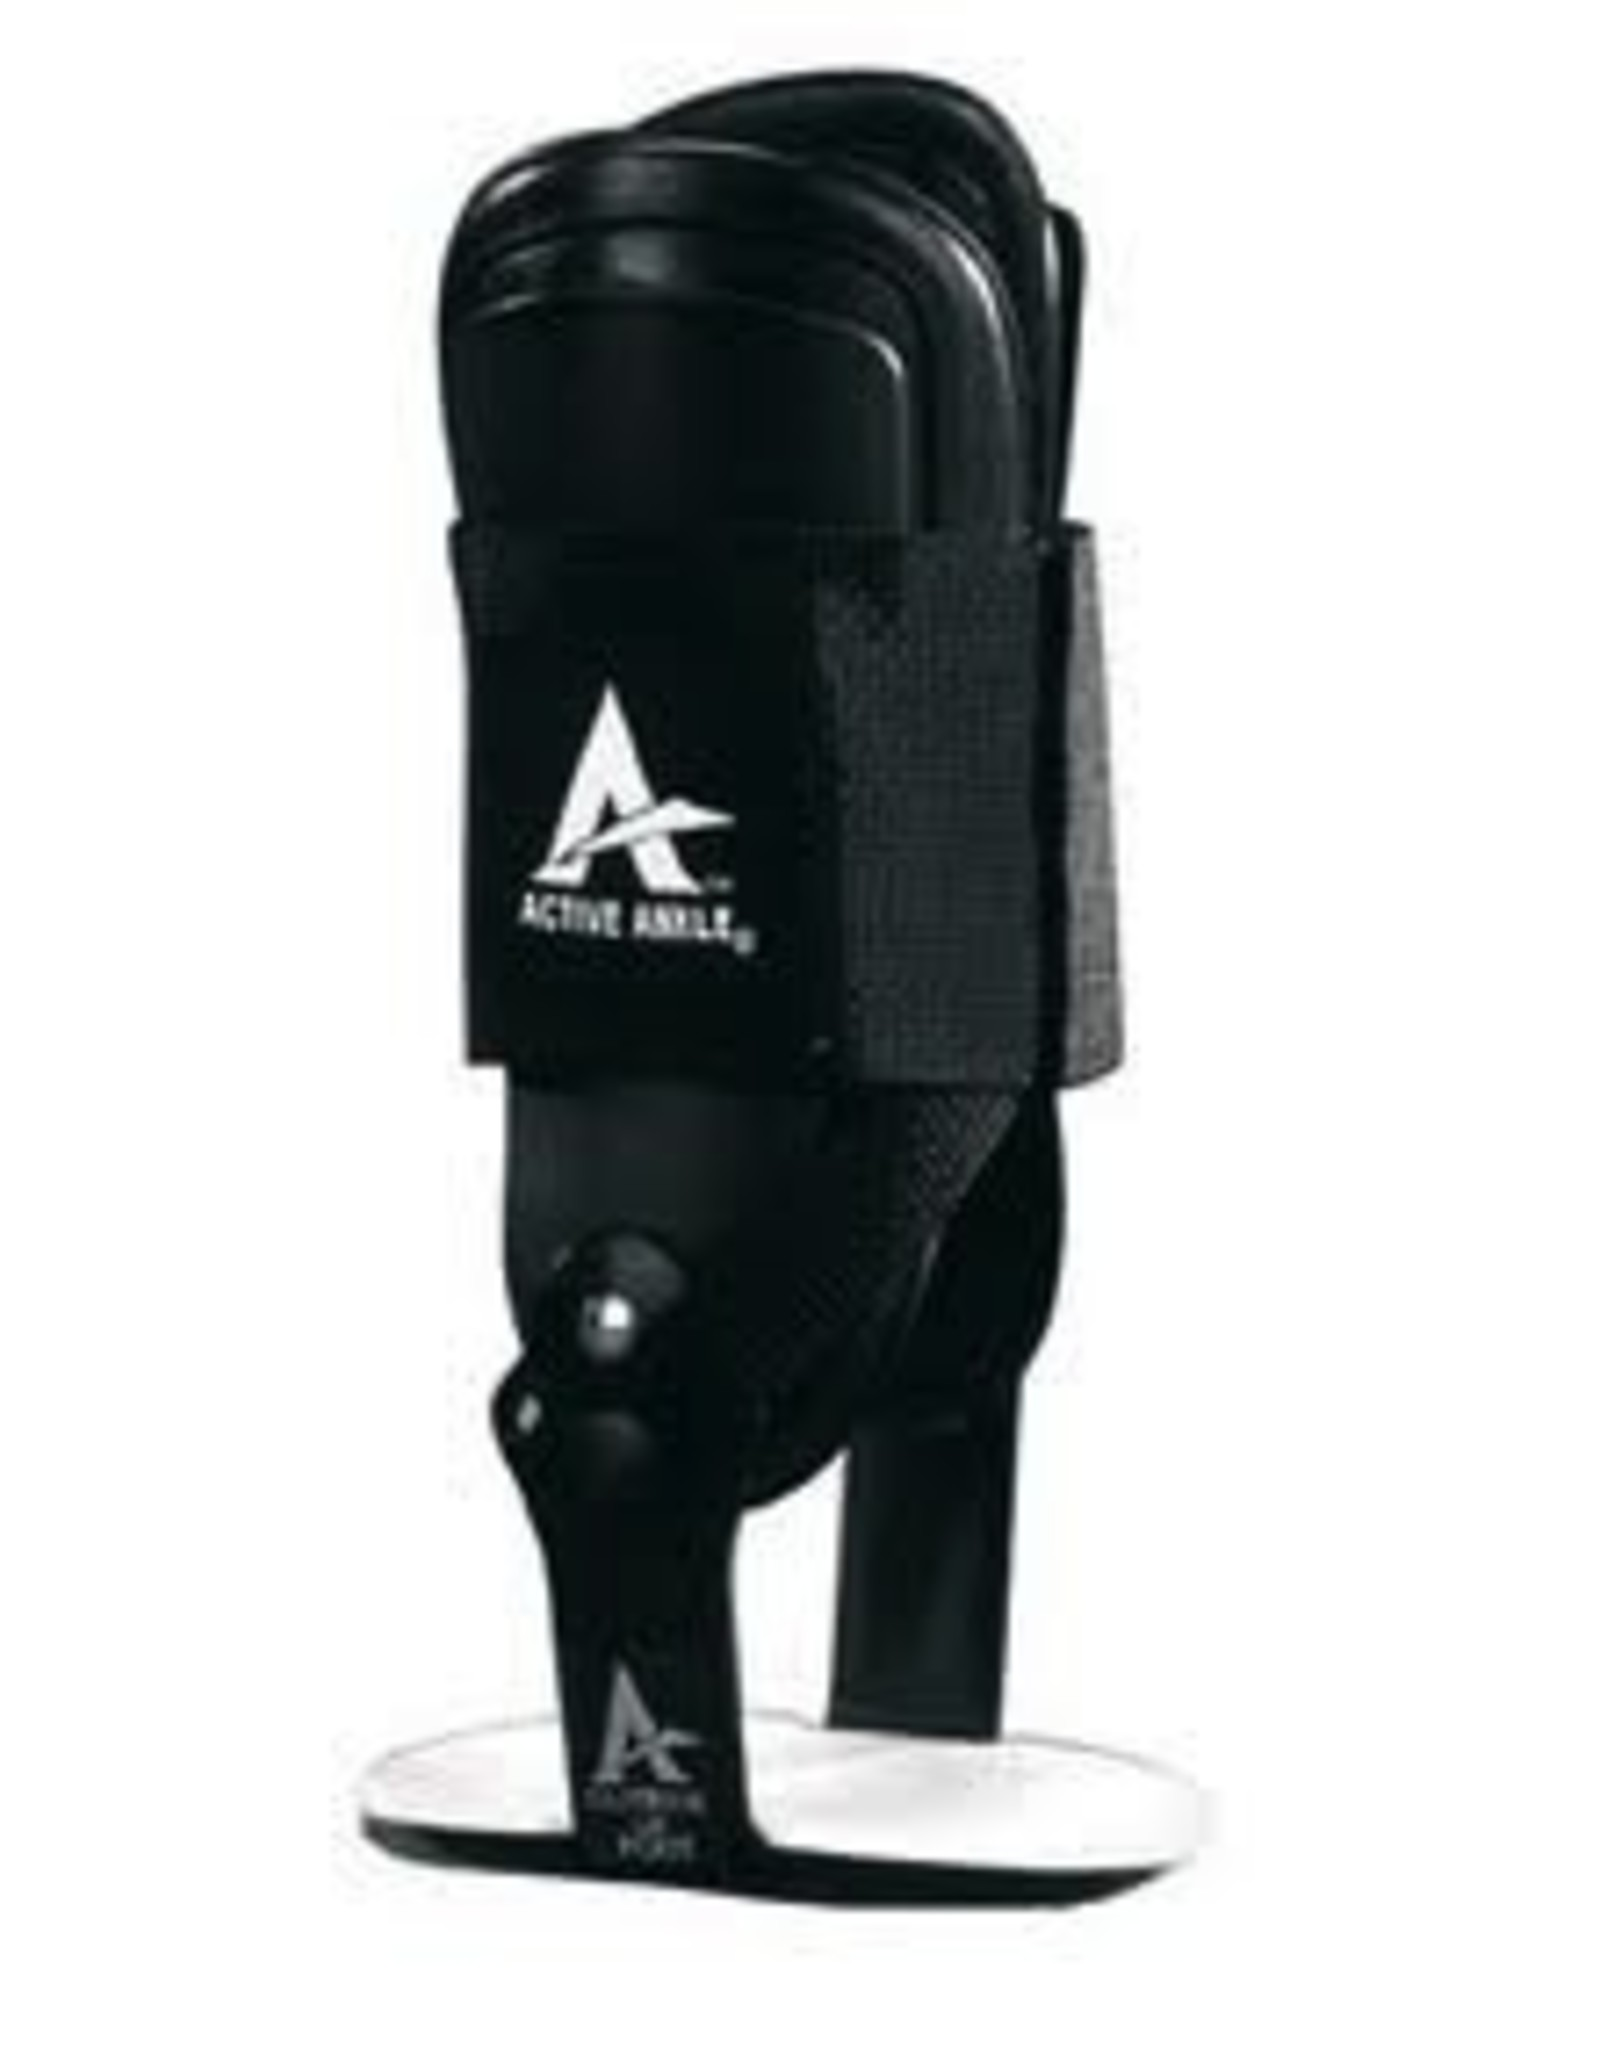 Active Ankle T2 Active Ankle Brace